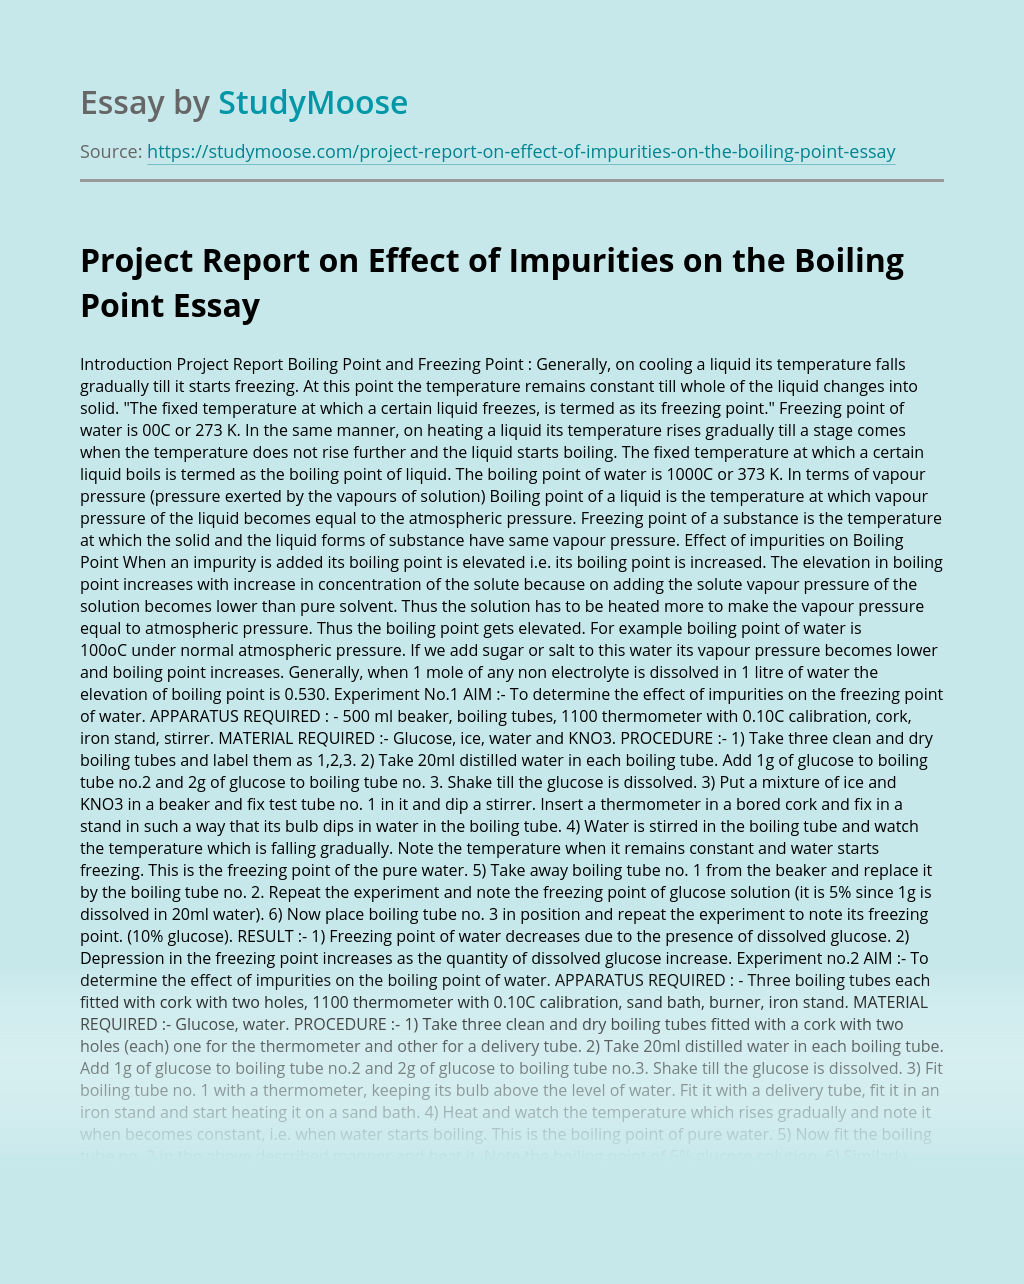 Project Report on Effect of Impurities on the Boiling Point